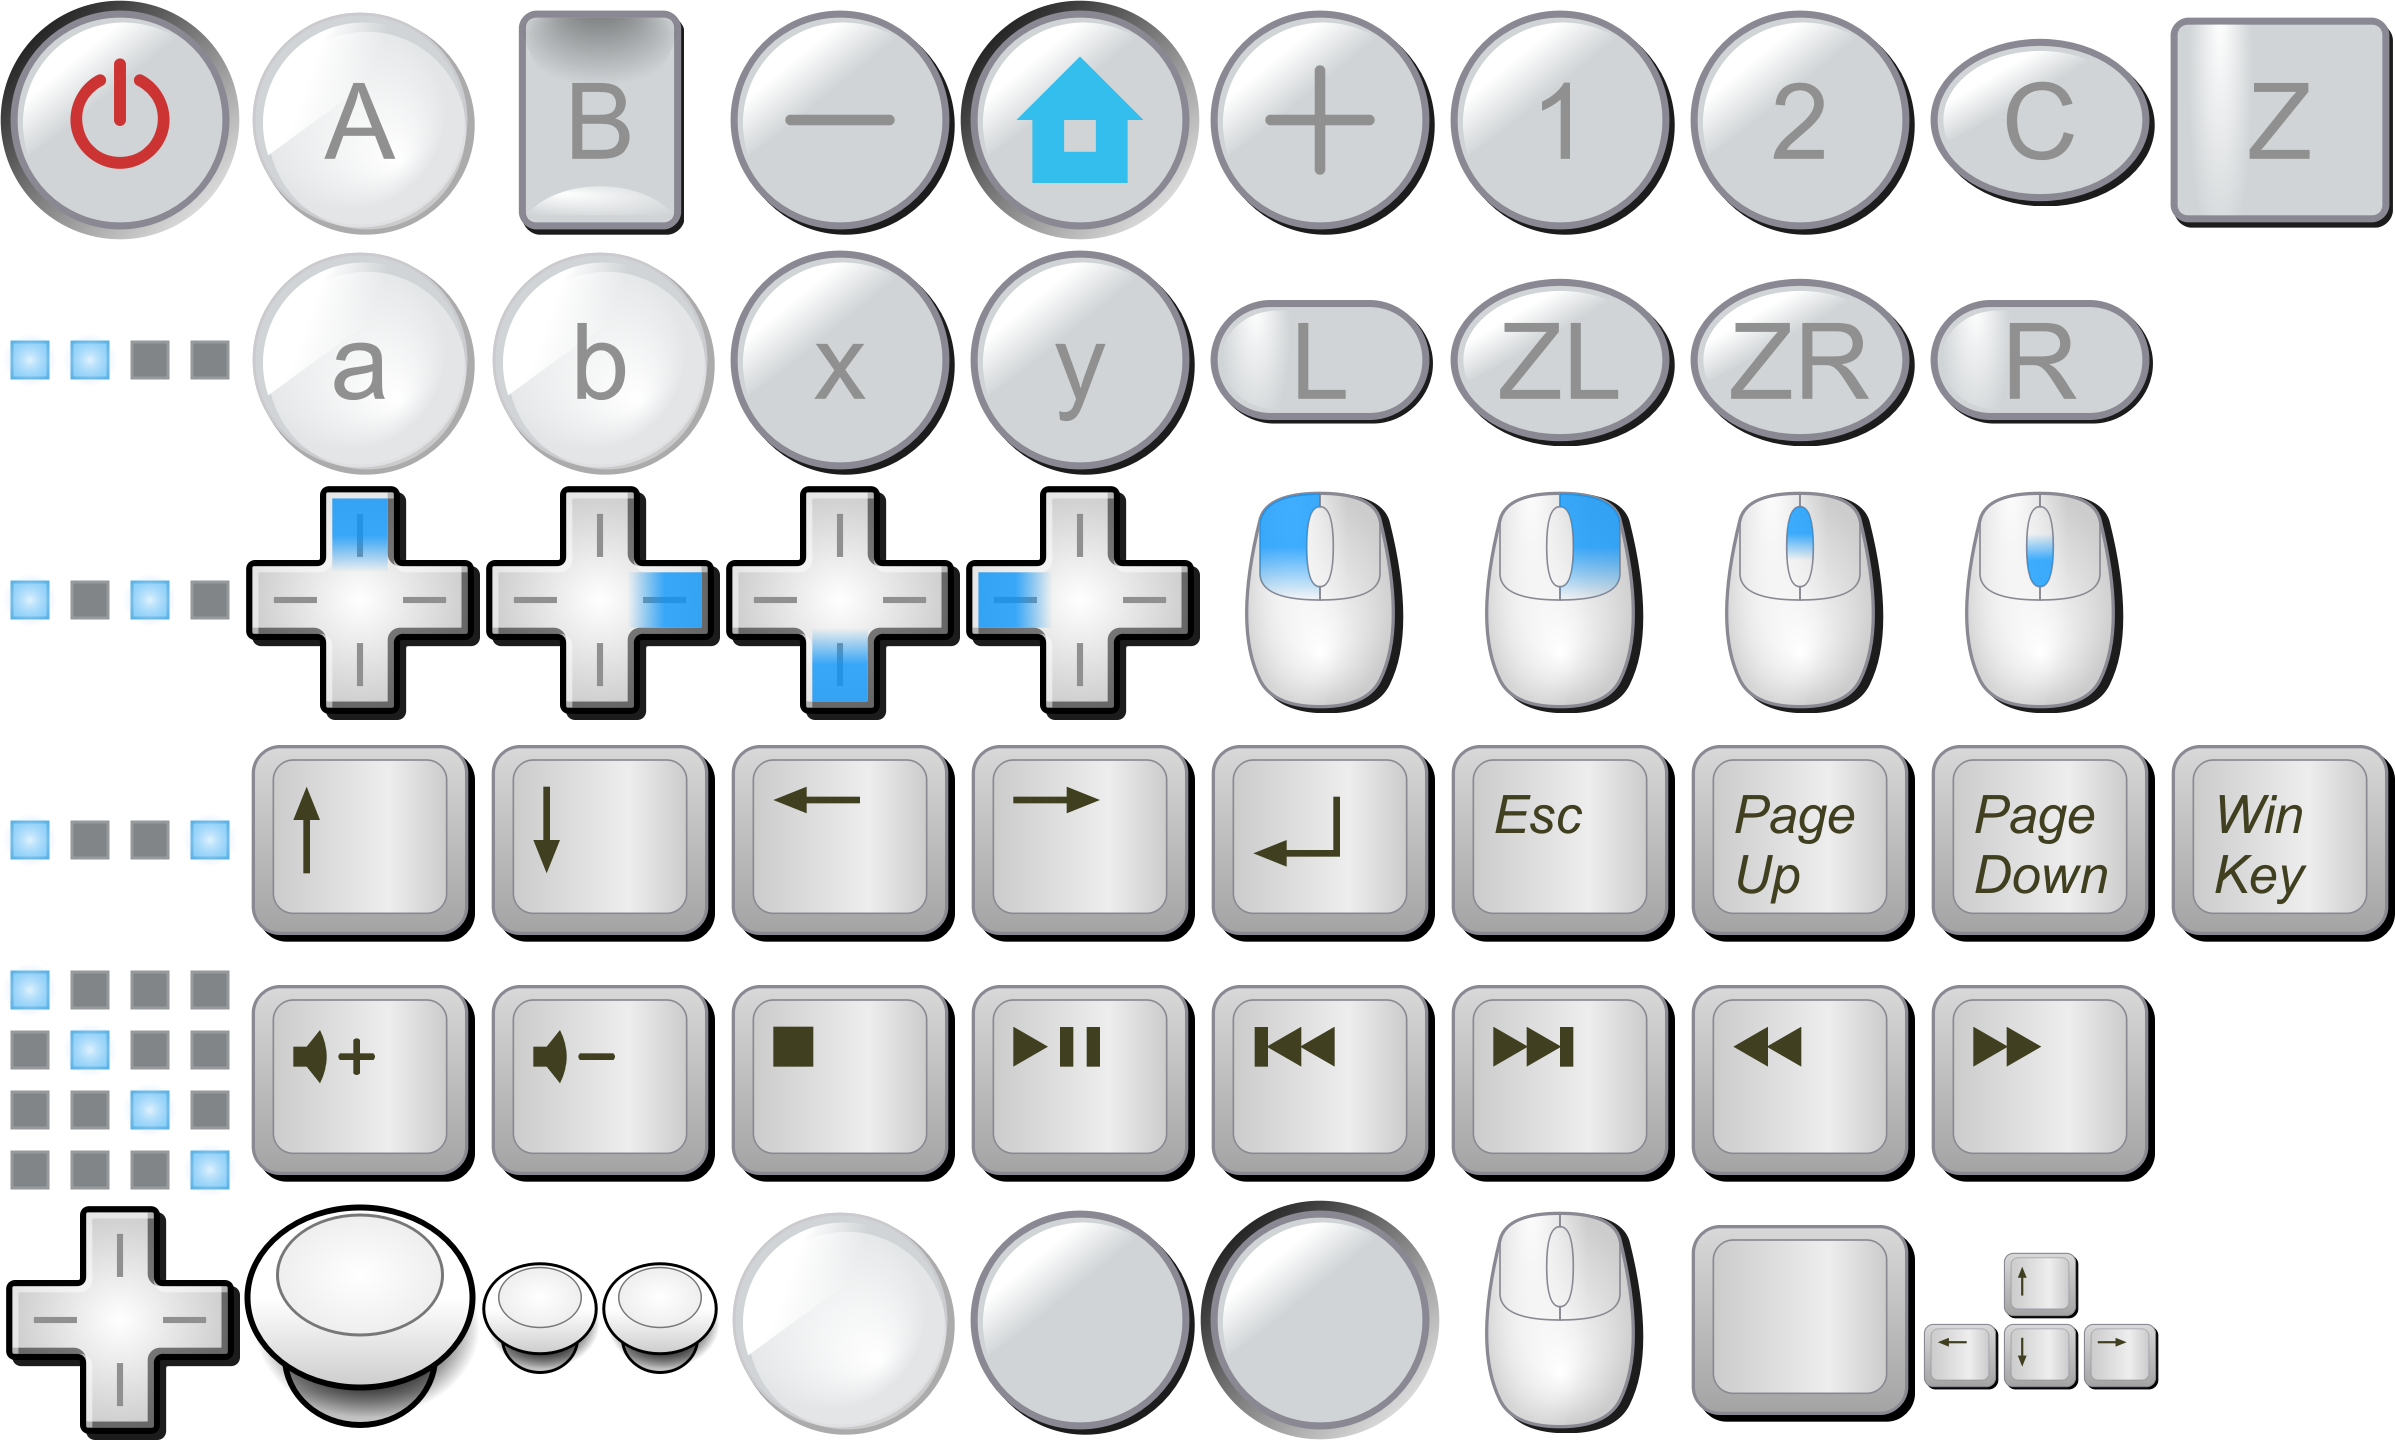 Wii buttons, mouse buttons, keyboard keys by CrazyTerabyte